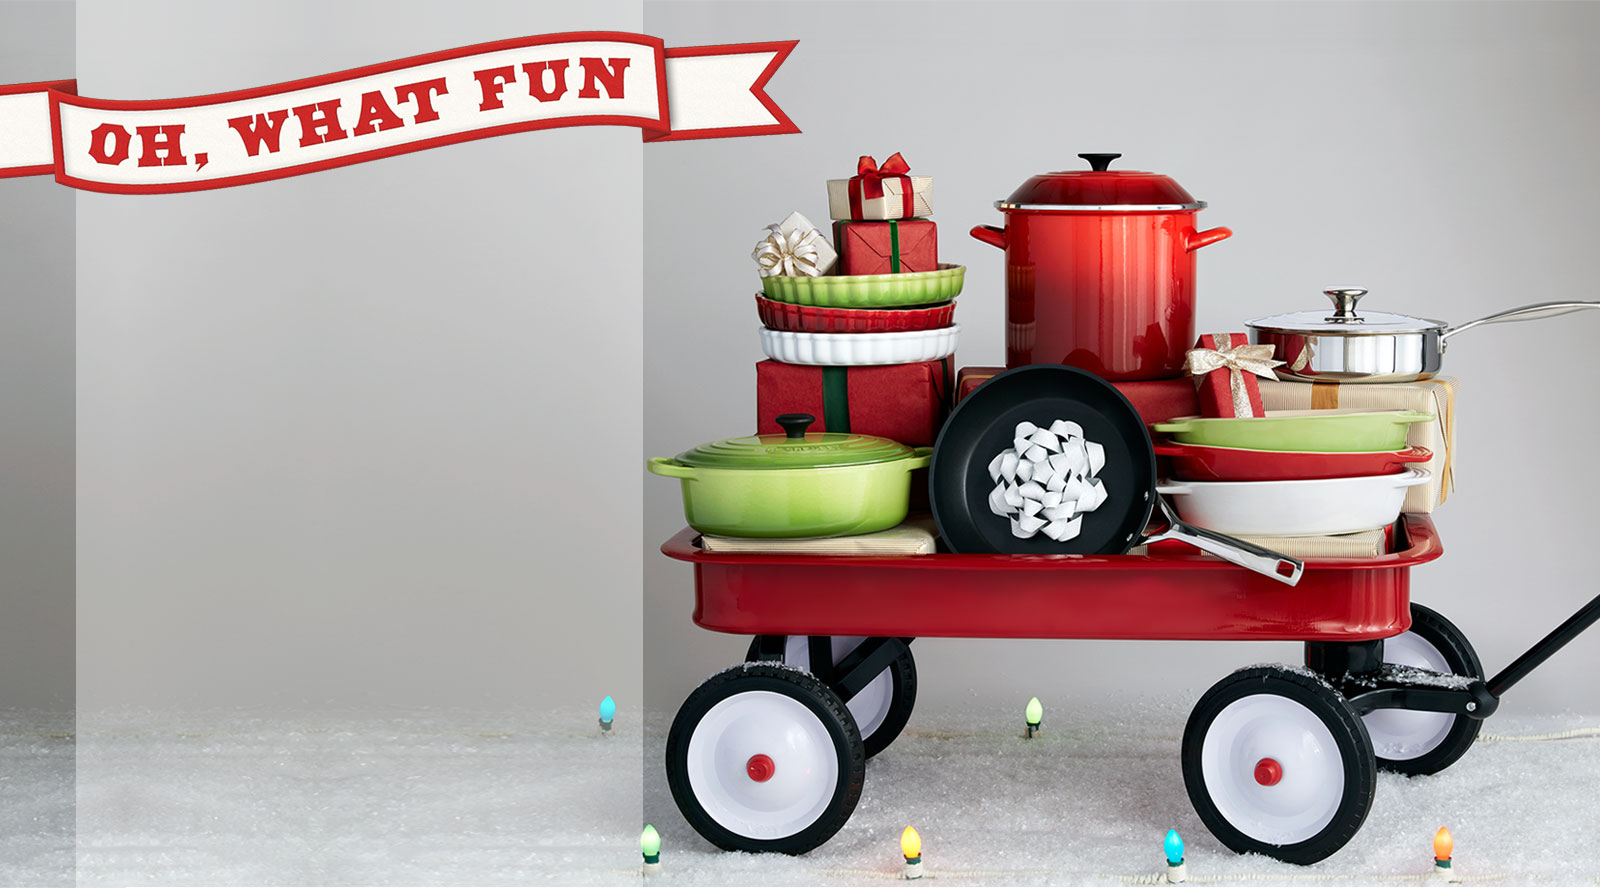 Oh, what fun! Le Creuset invites you to have a blast with the colorful